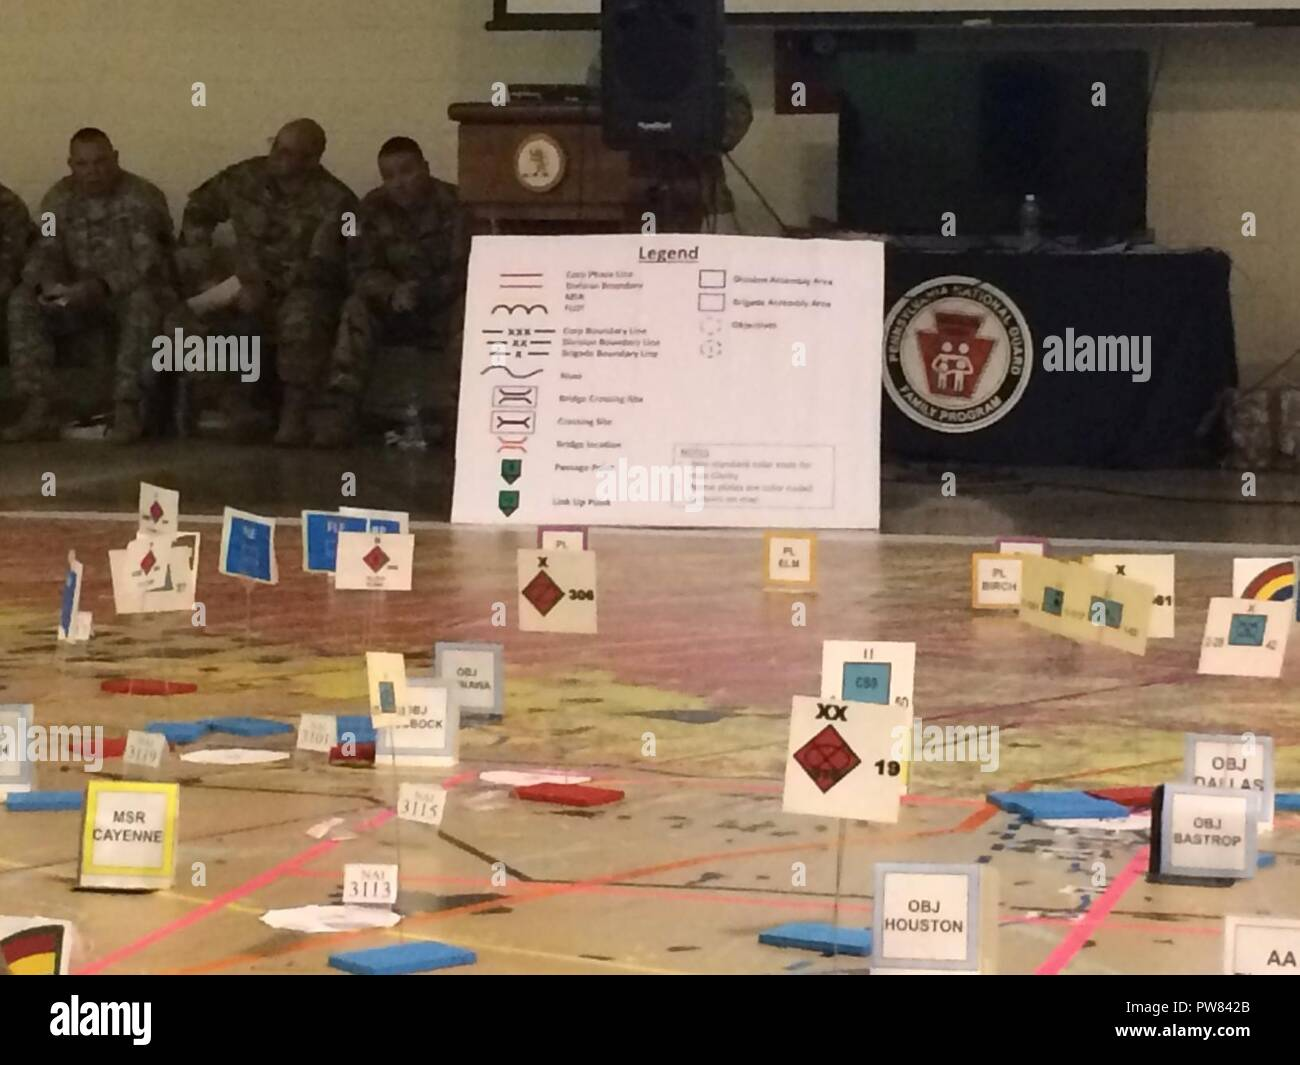 Cardboard markets indicate enemy units and objectives on a giant map at Fort Indiantown Gap, Pennsylvania on Oct. 4, 2017, as leaders of the New York Army National Guard's 42nd Infantry Division conduct a Rehearsal of Concept exercise during their Warfighter exercise. Leaders move markers representing their units and discuss their actions at that phase of the battle to ensure that all leaders and staff understand the plan. ( U.S. Army National Guard - Stock Image